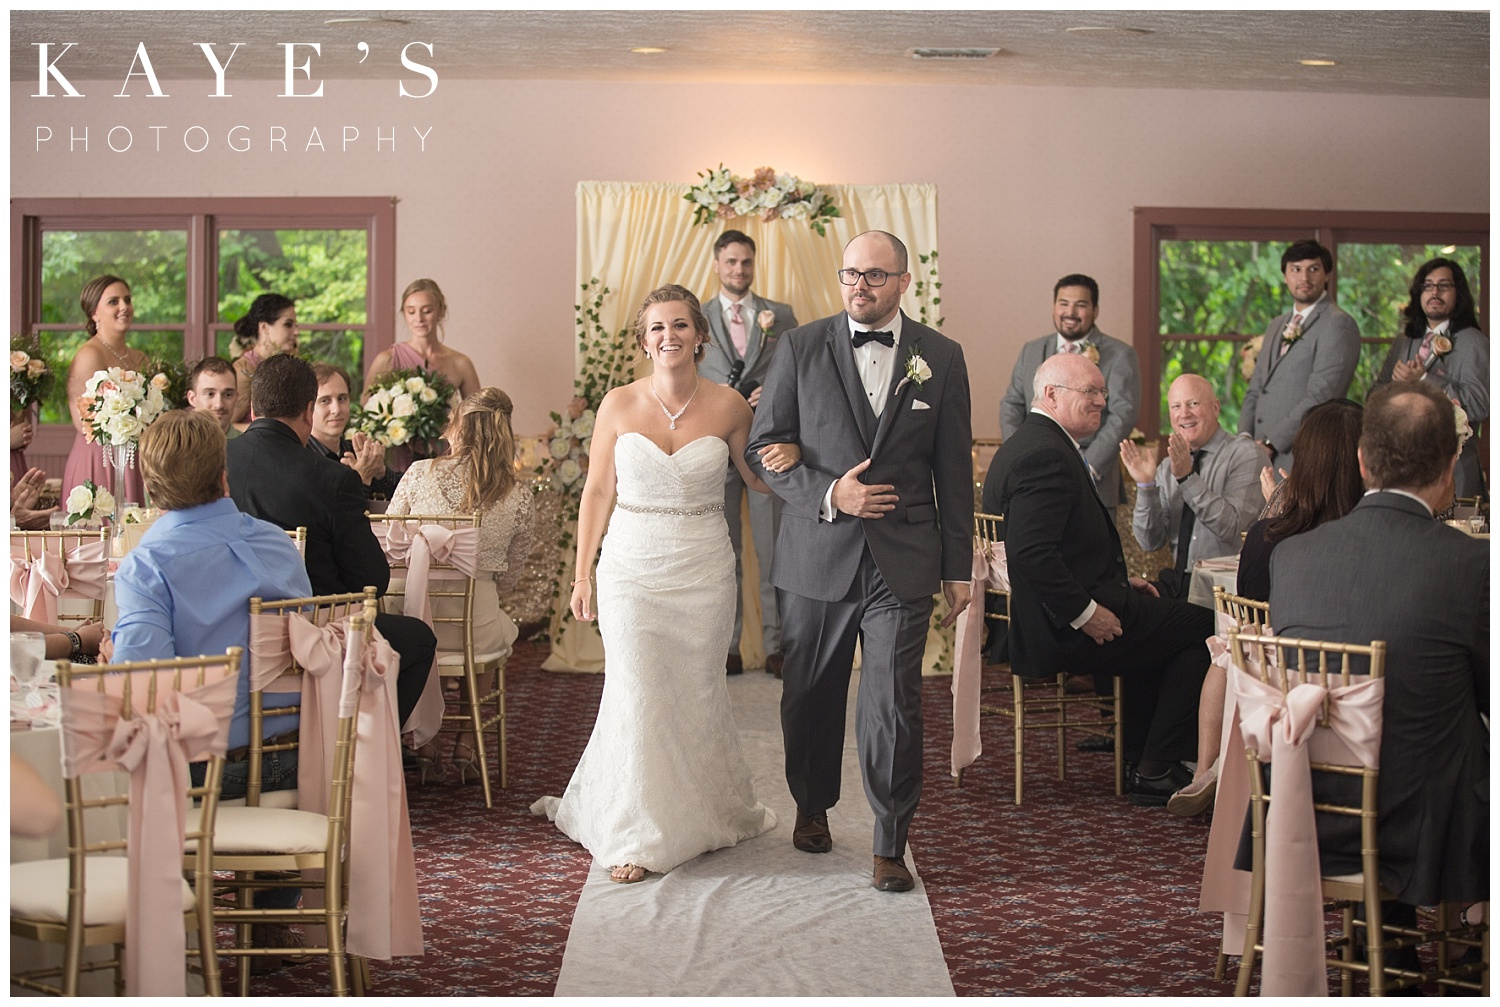 Bride and groom walking away from altar married during wedding at crossroads village!